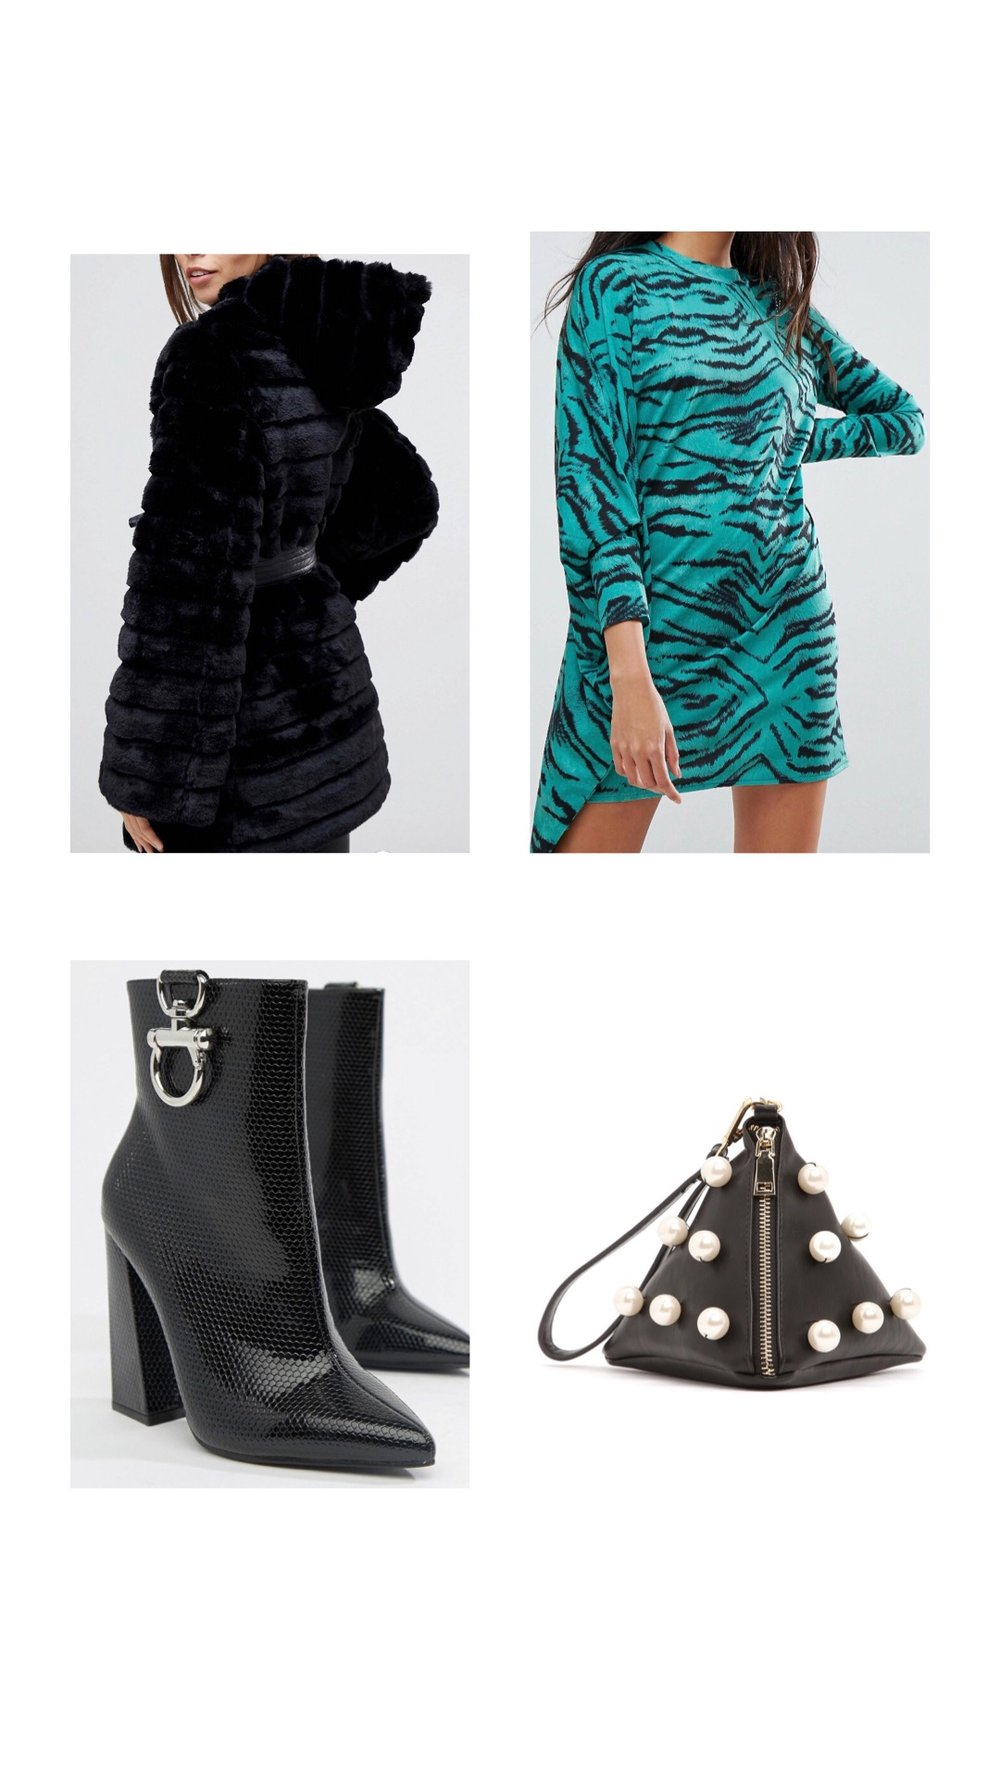 Asos animal print dress.JPG